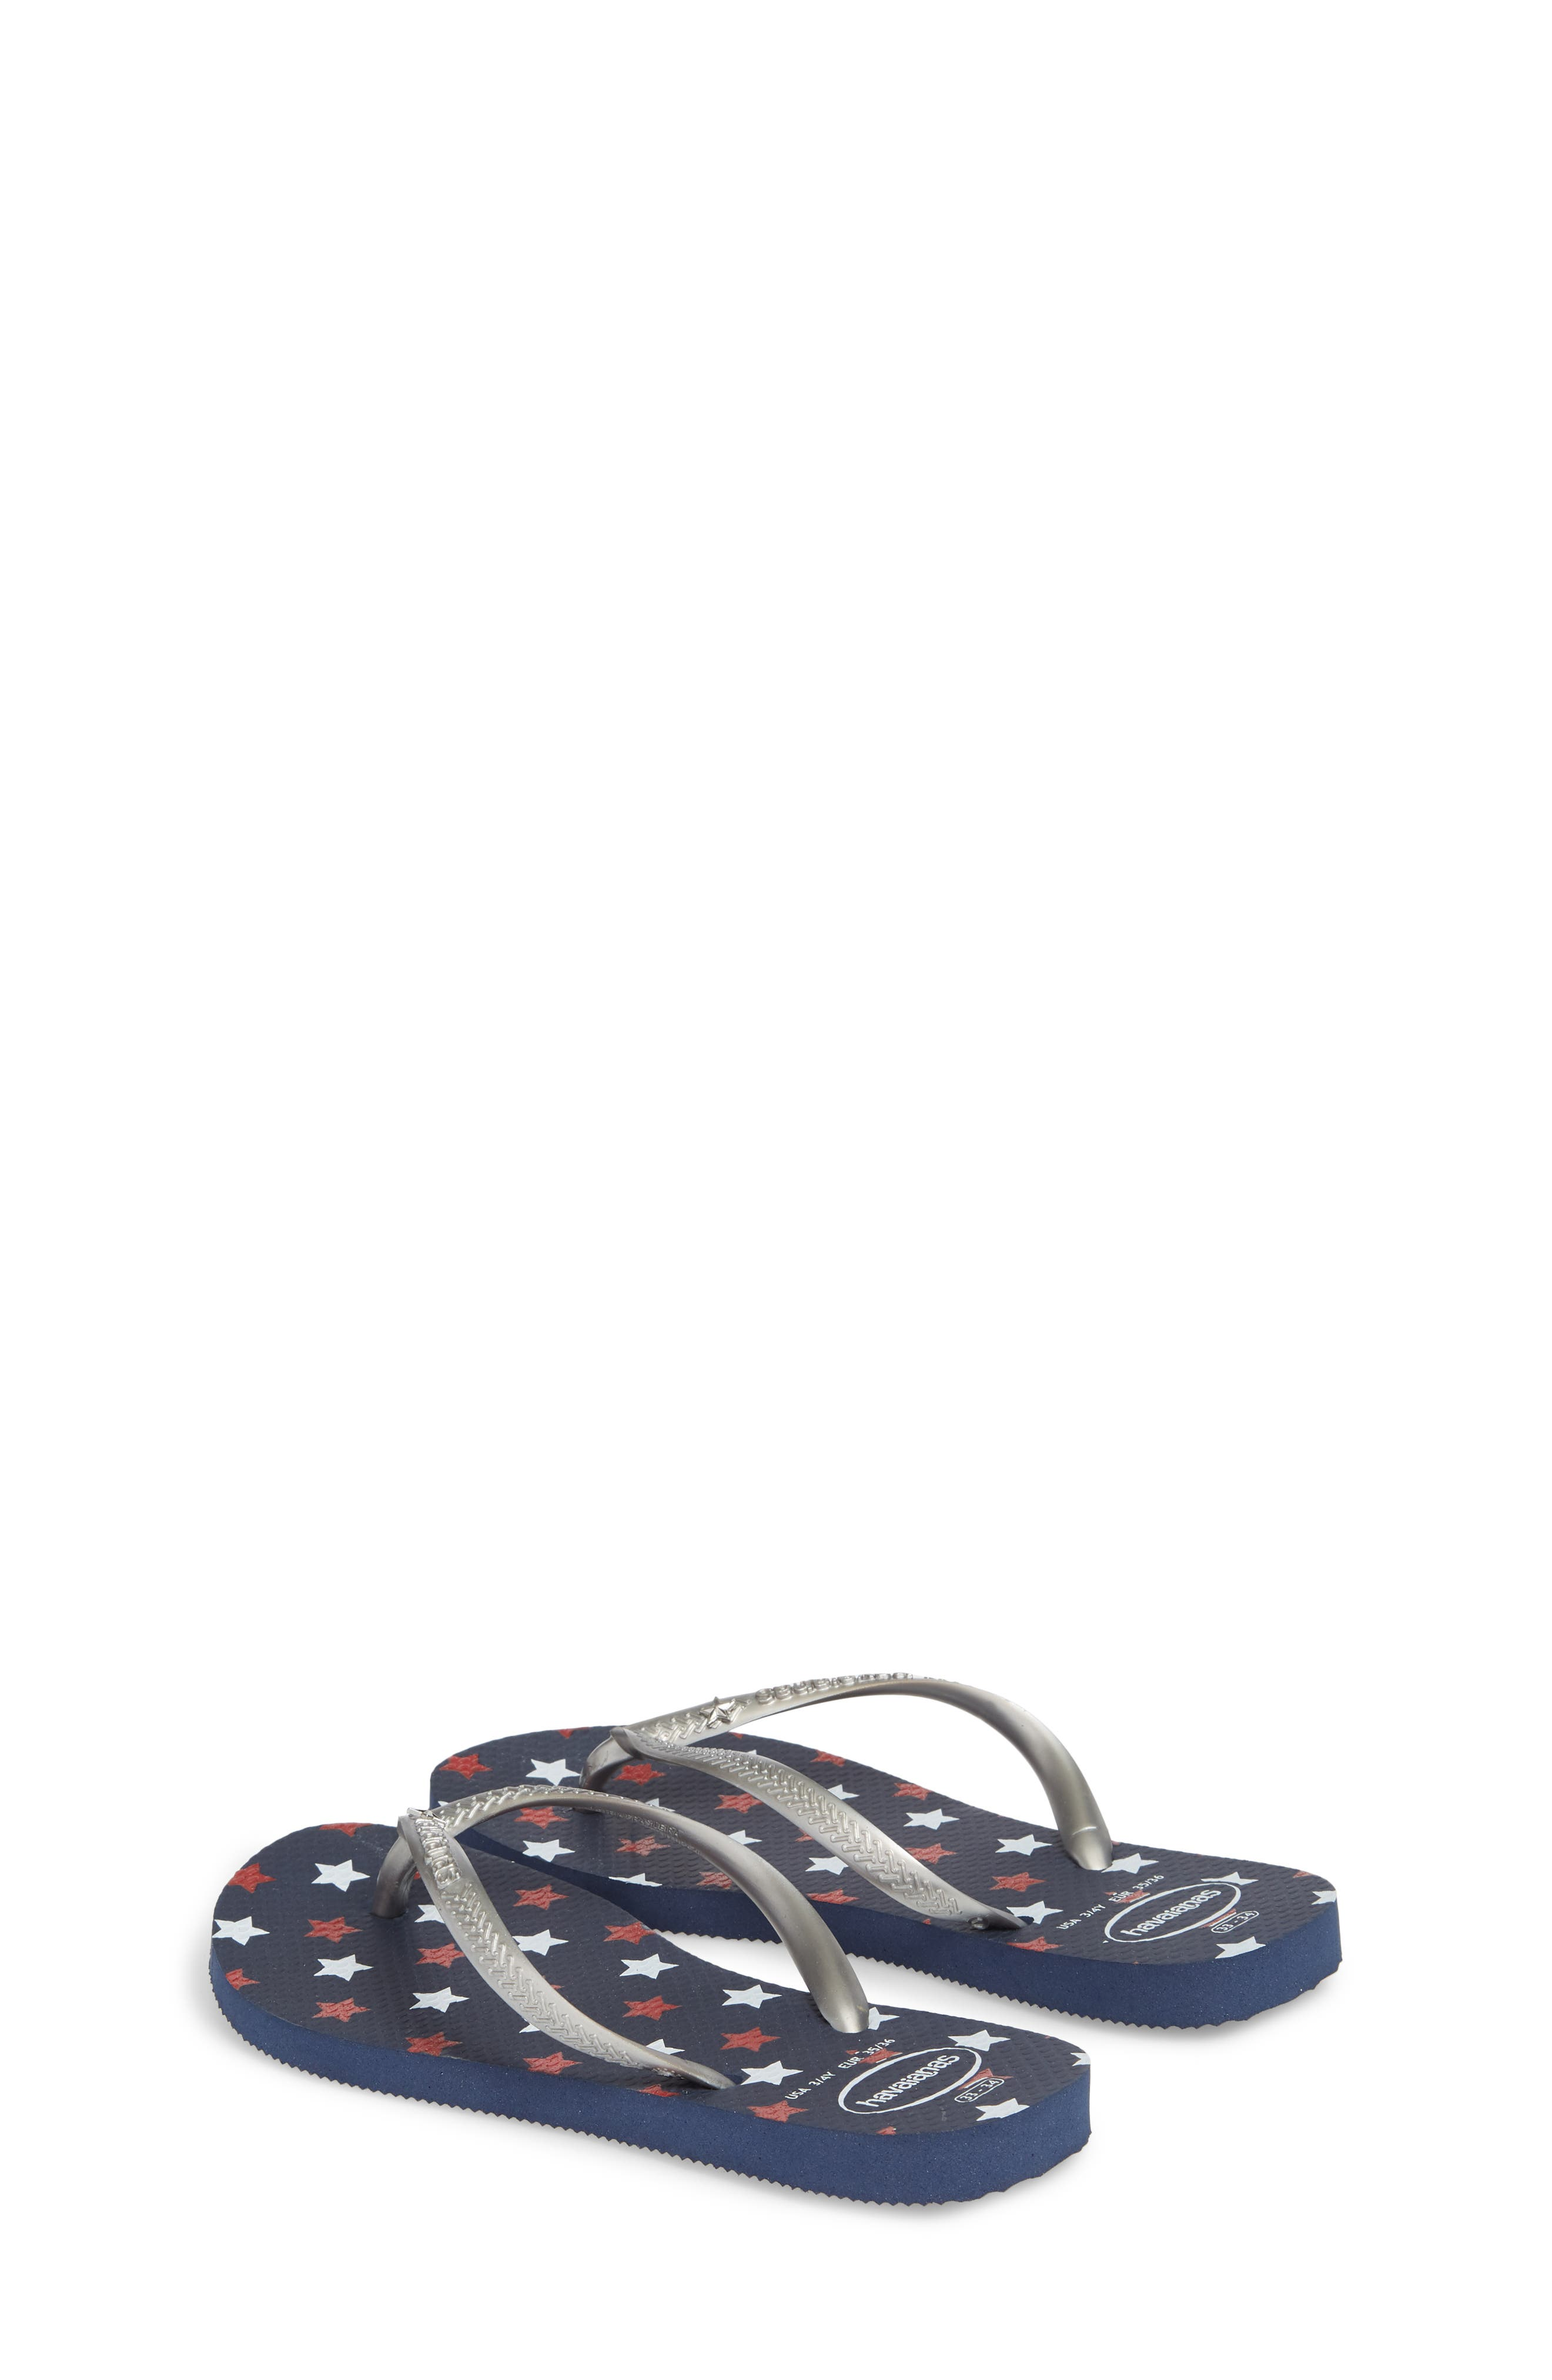 Havianas Slim Stars Glitter Flip Flop,                             Alternate thumbnail 2, color,                             Navy Blue